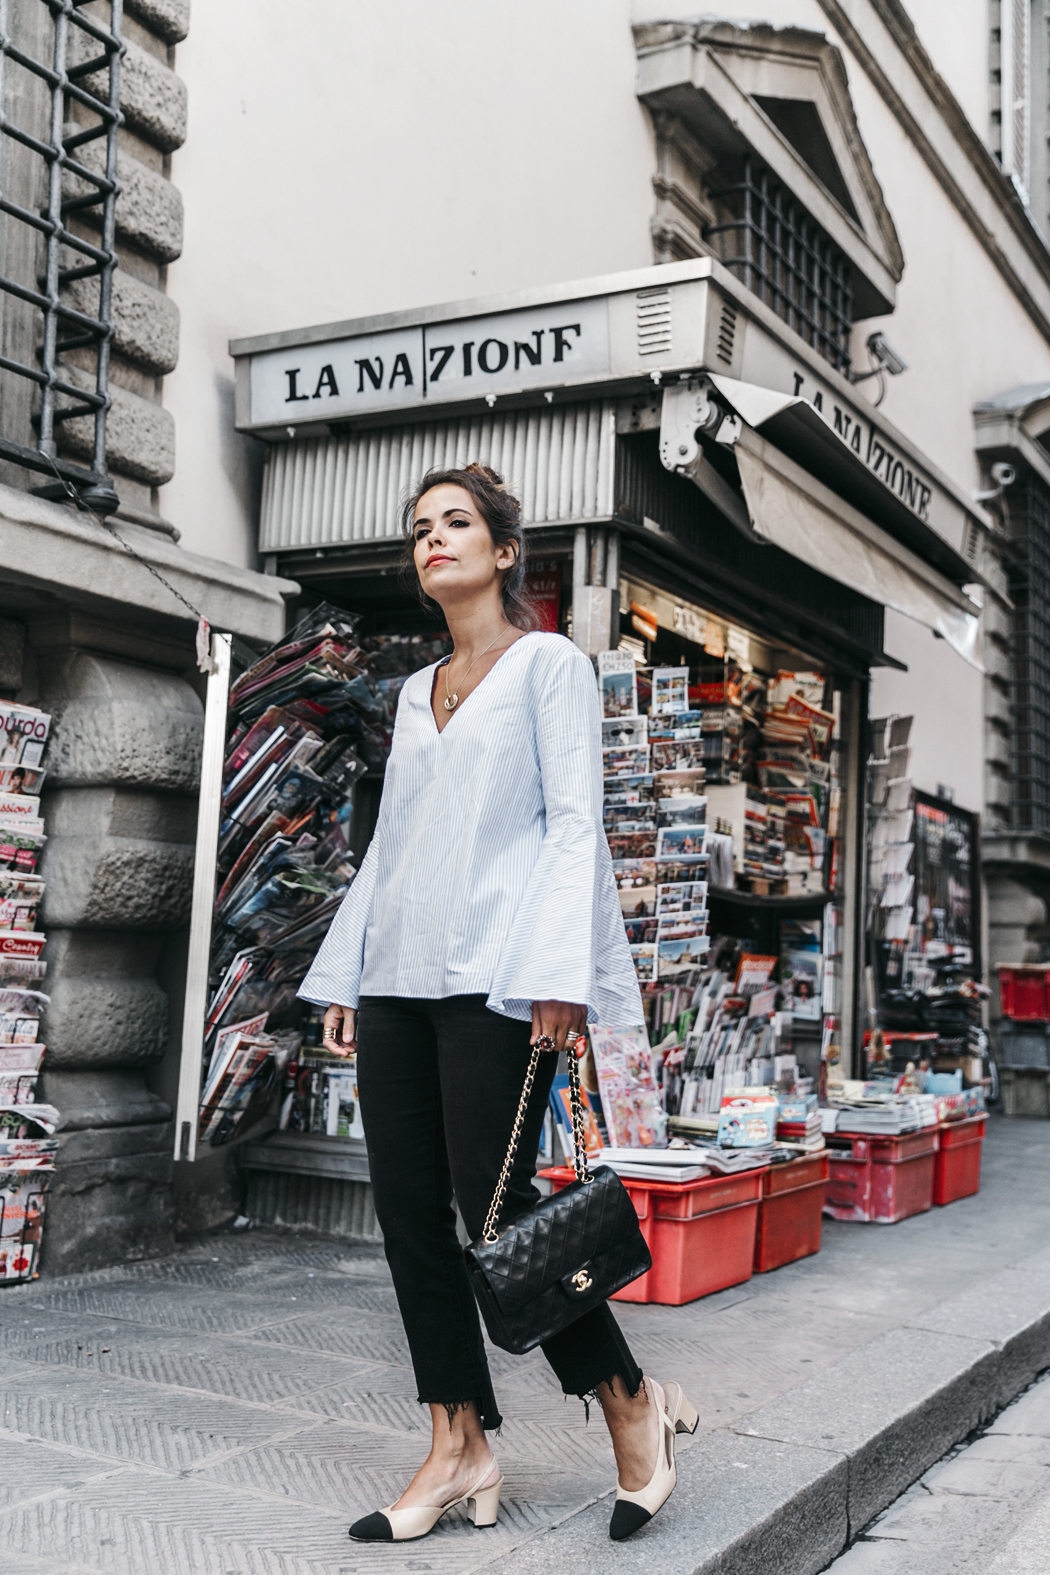 Florence-Collage_On_The_Road-Black_Jeans-Chanel_Slingback_Shoes-Blue_Shirt-Uterque-Topknot-Outfit-46